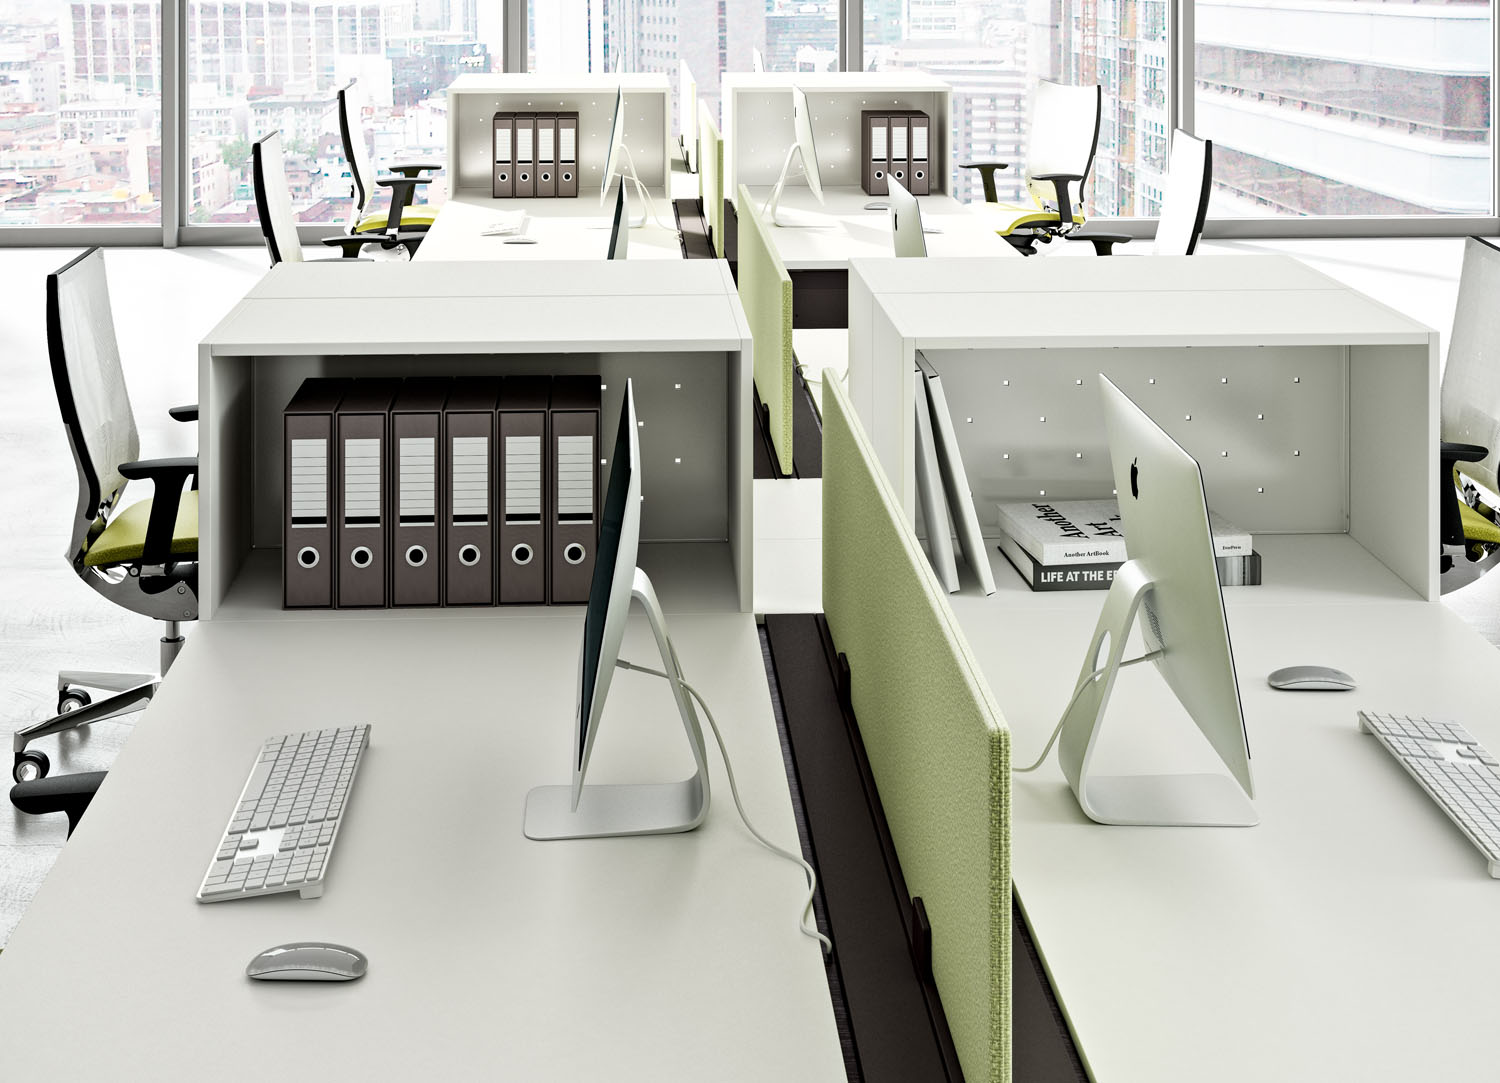 A modern office desk utilizes smart tech and storage so you can display what matters most. Learn more at StrongProject.